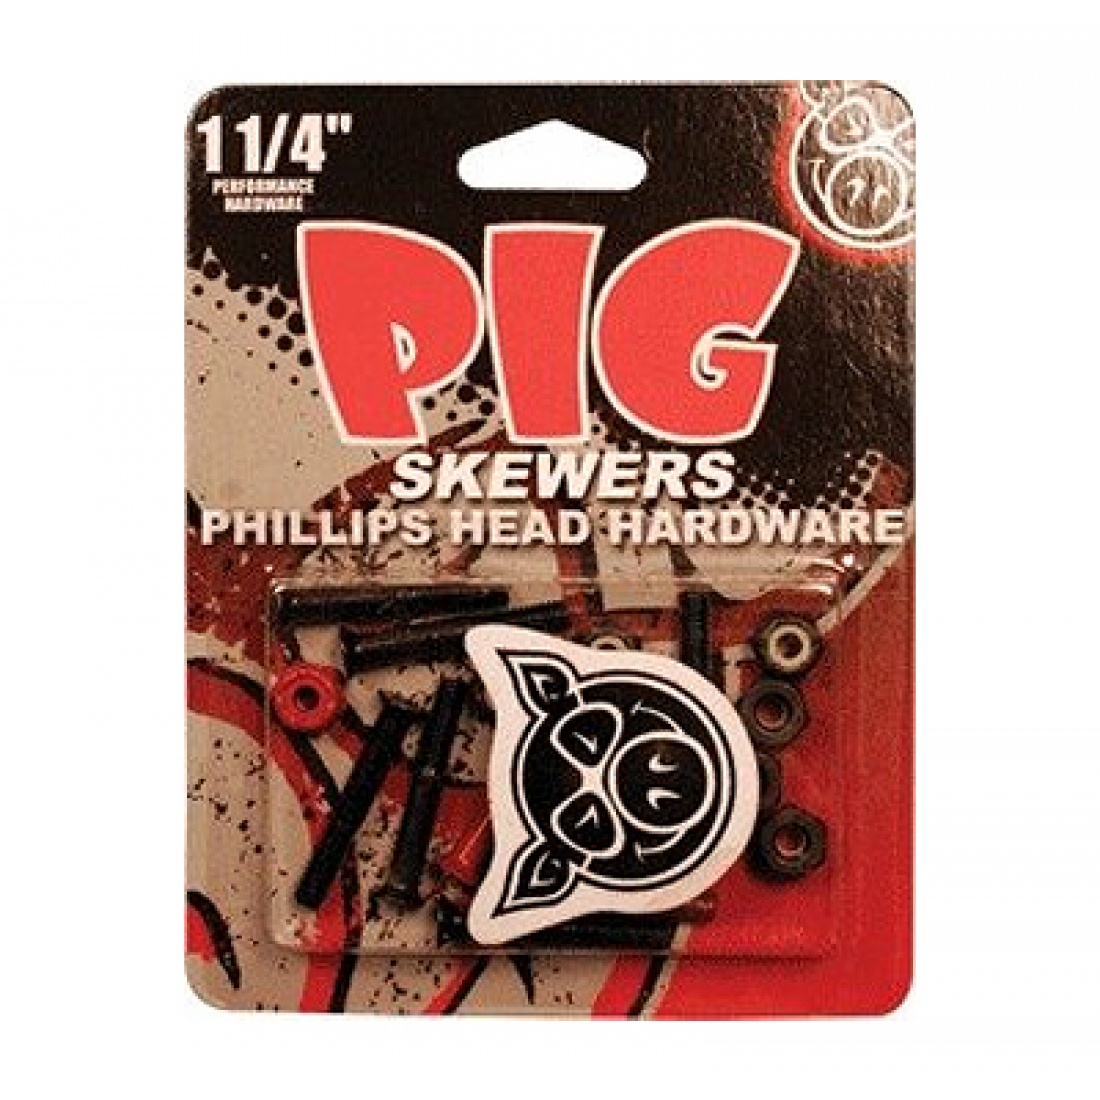 "PIG-Skewers Allen 1 1/4"" Hardware (Set of 8)"